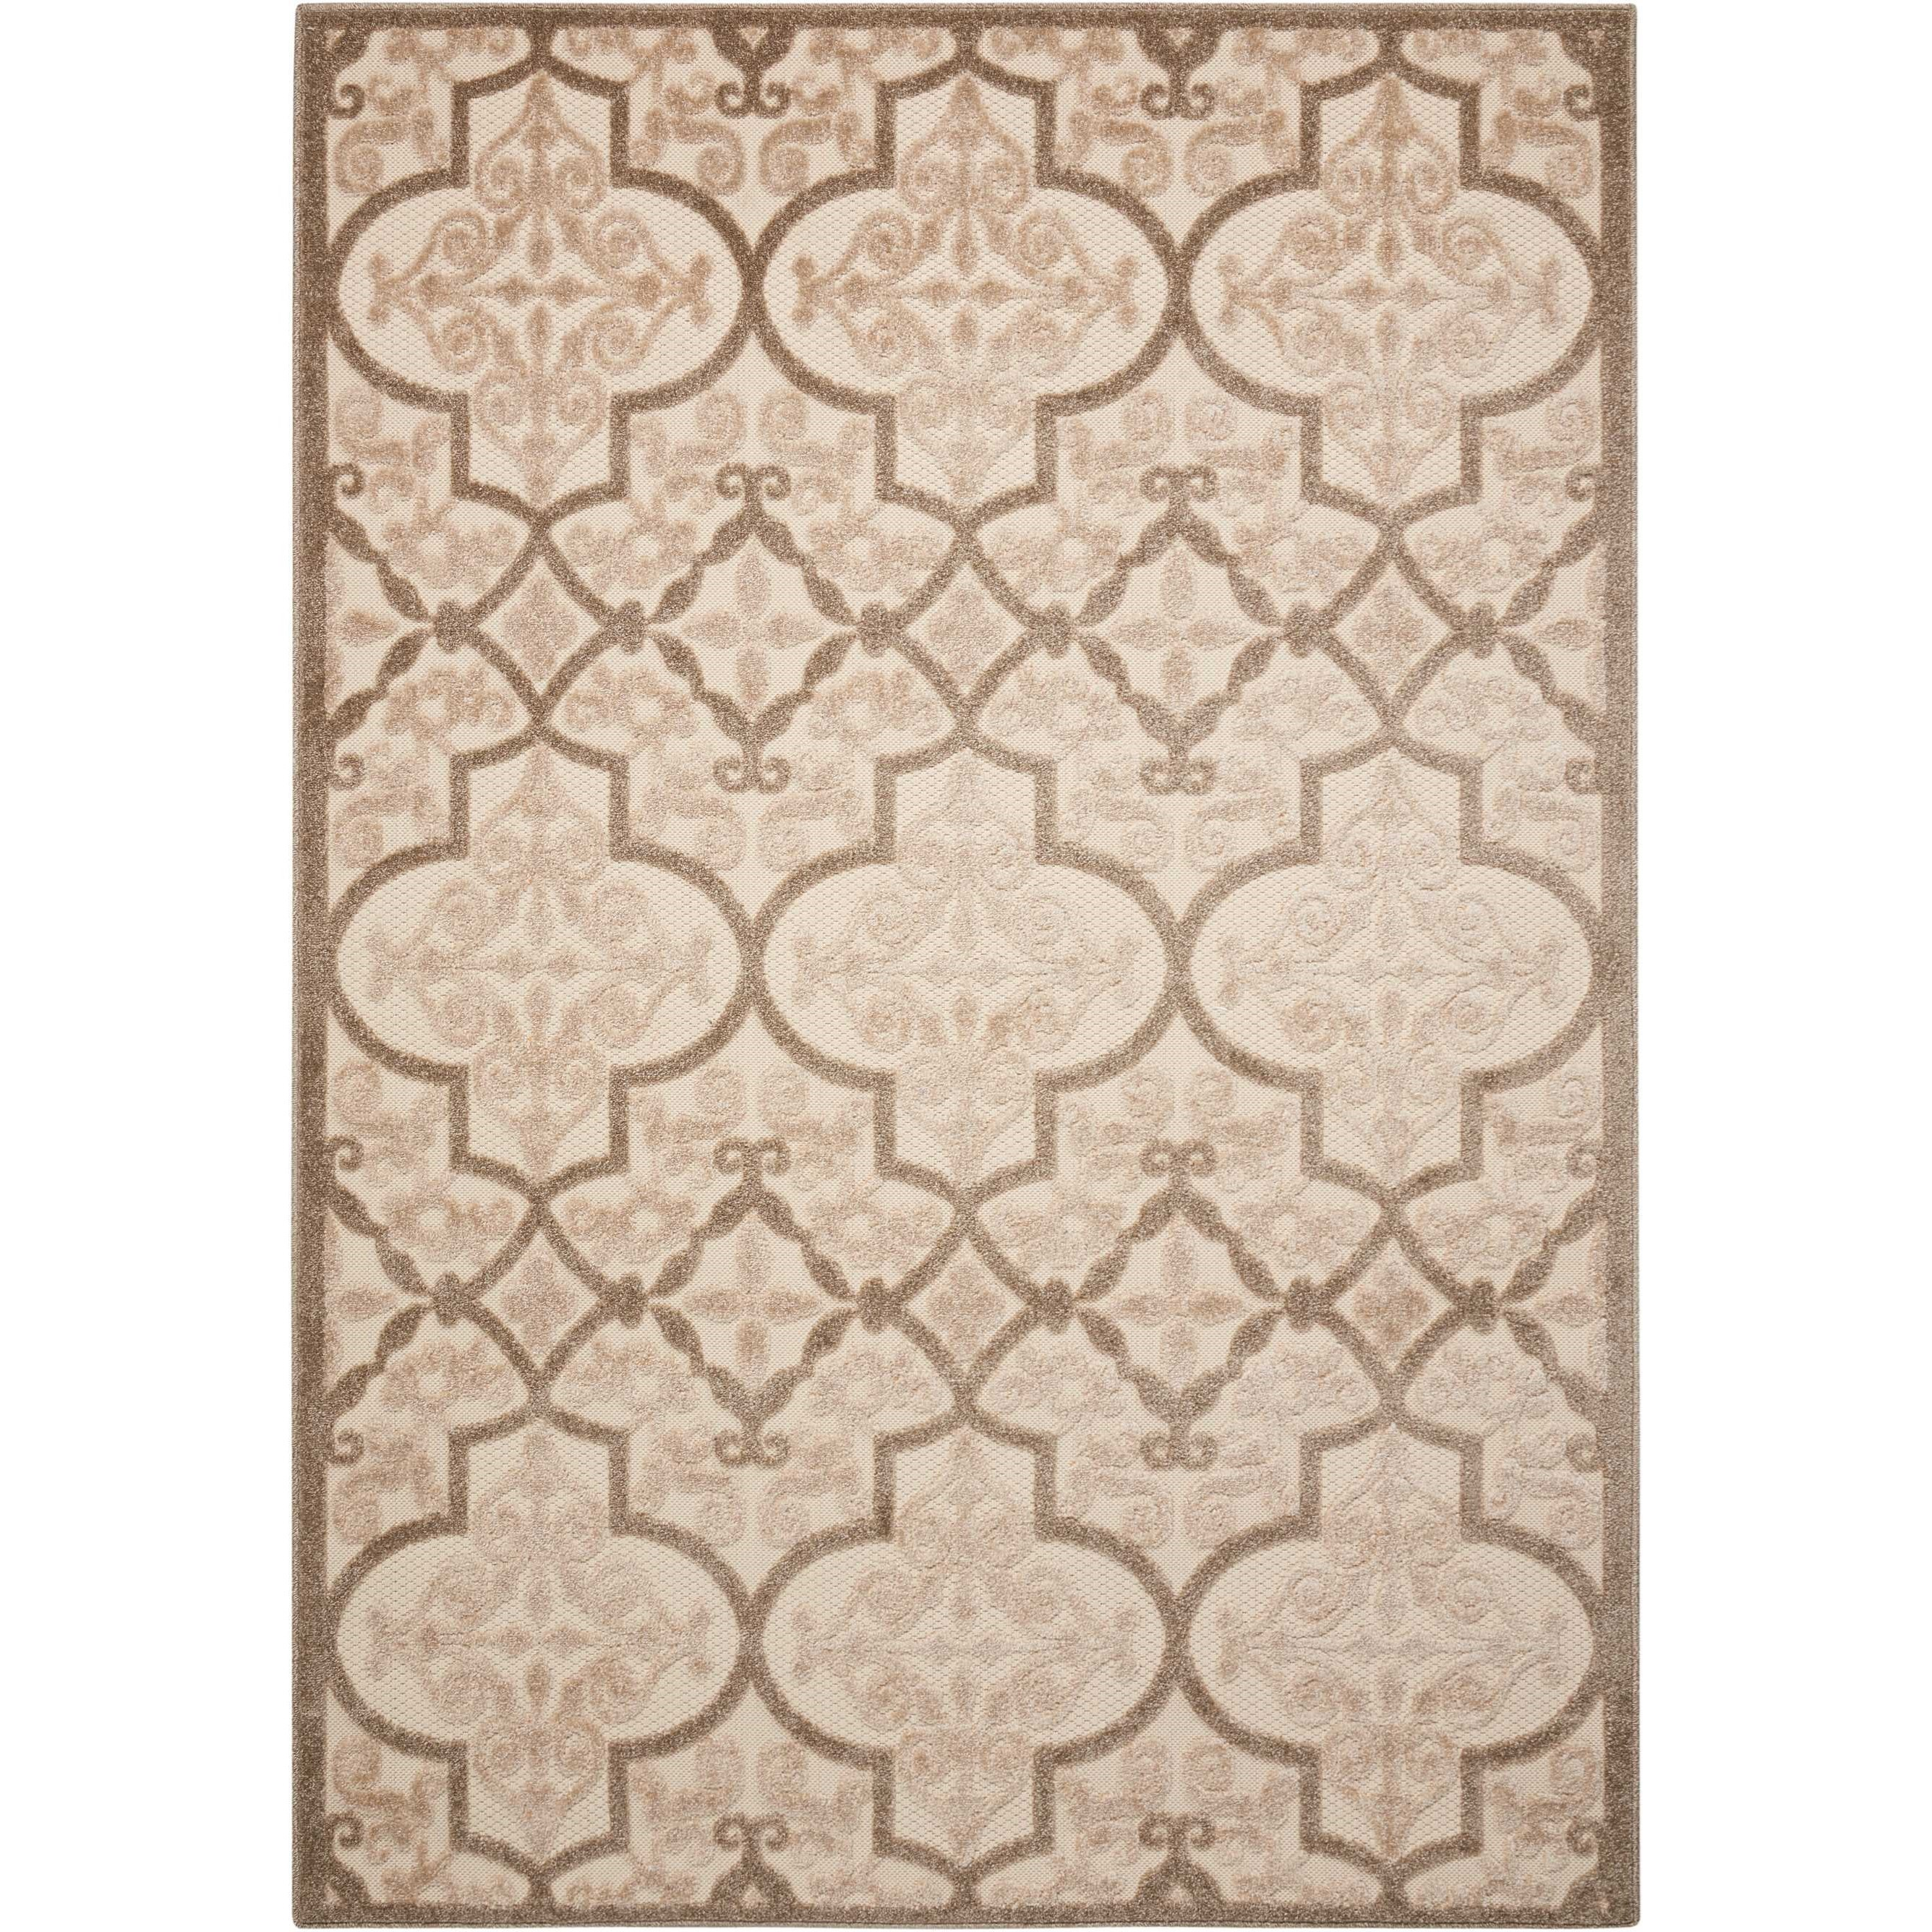 "Aloha 3'6"" X 5'6"" Cream                Rug by Nourison at Sprintz Furniture"